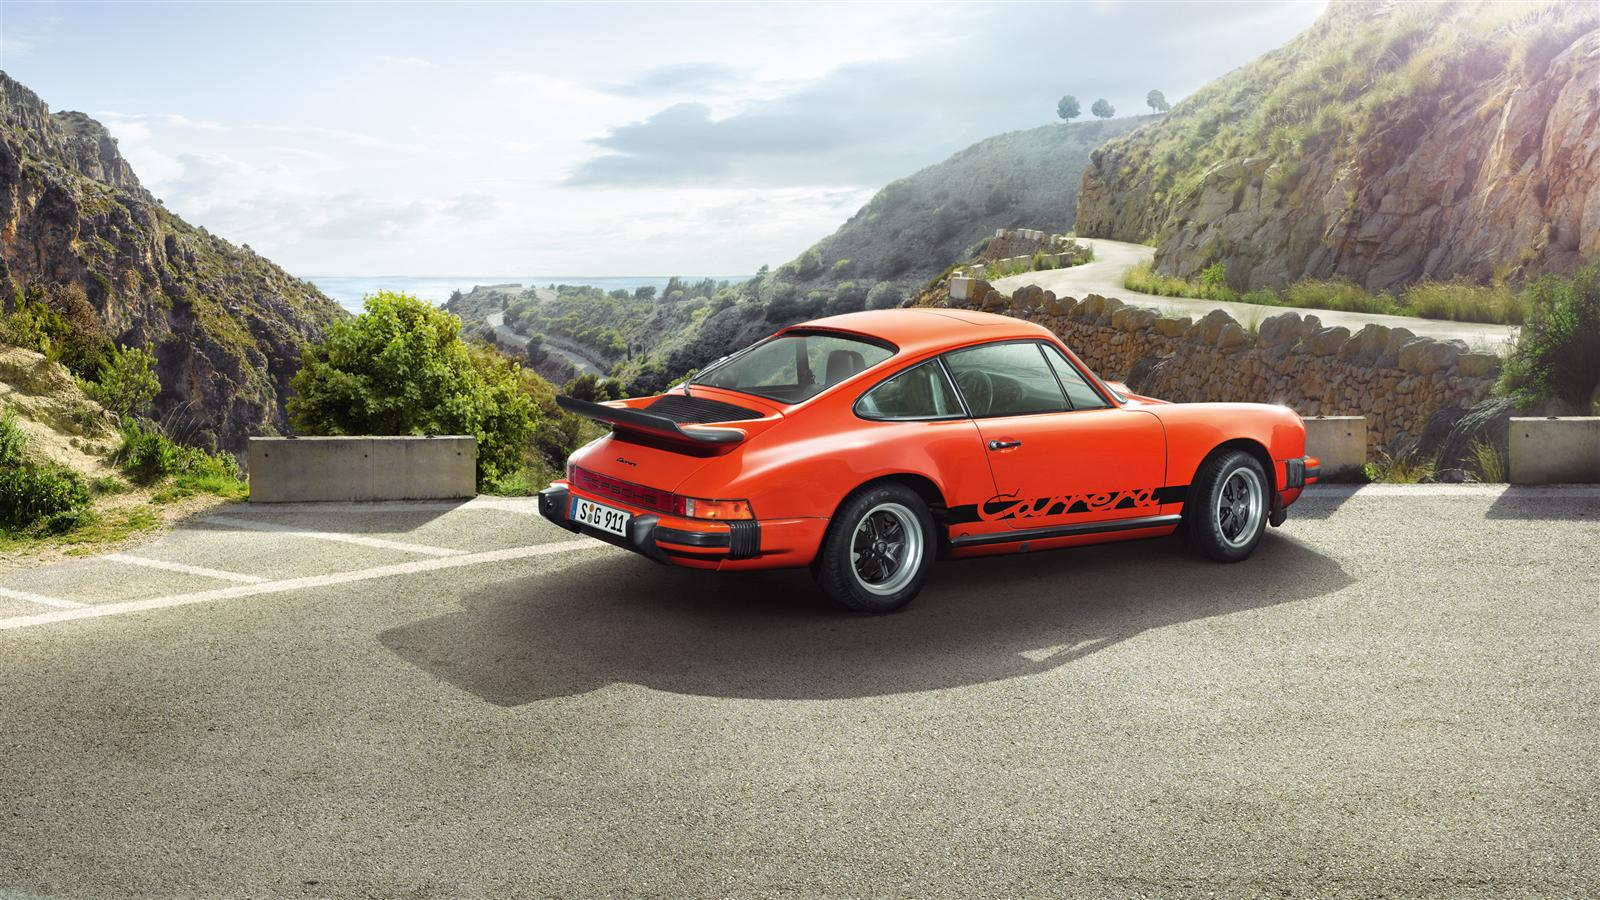 Porsche Gallery Porsche Cars North America